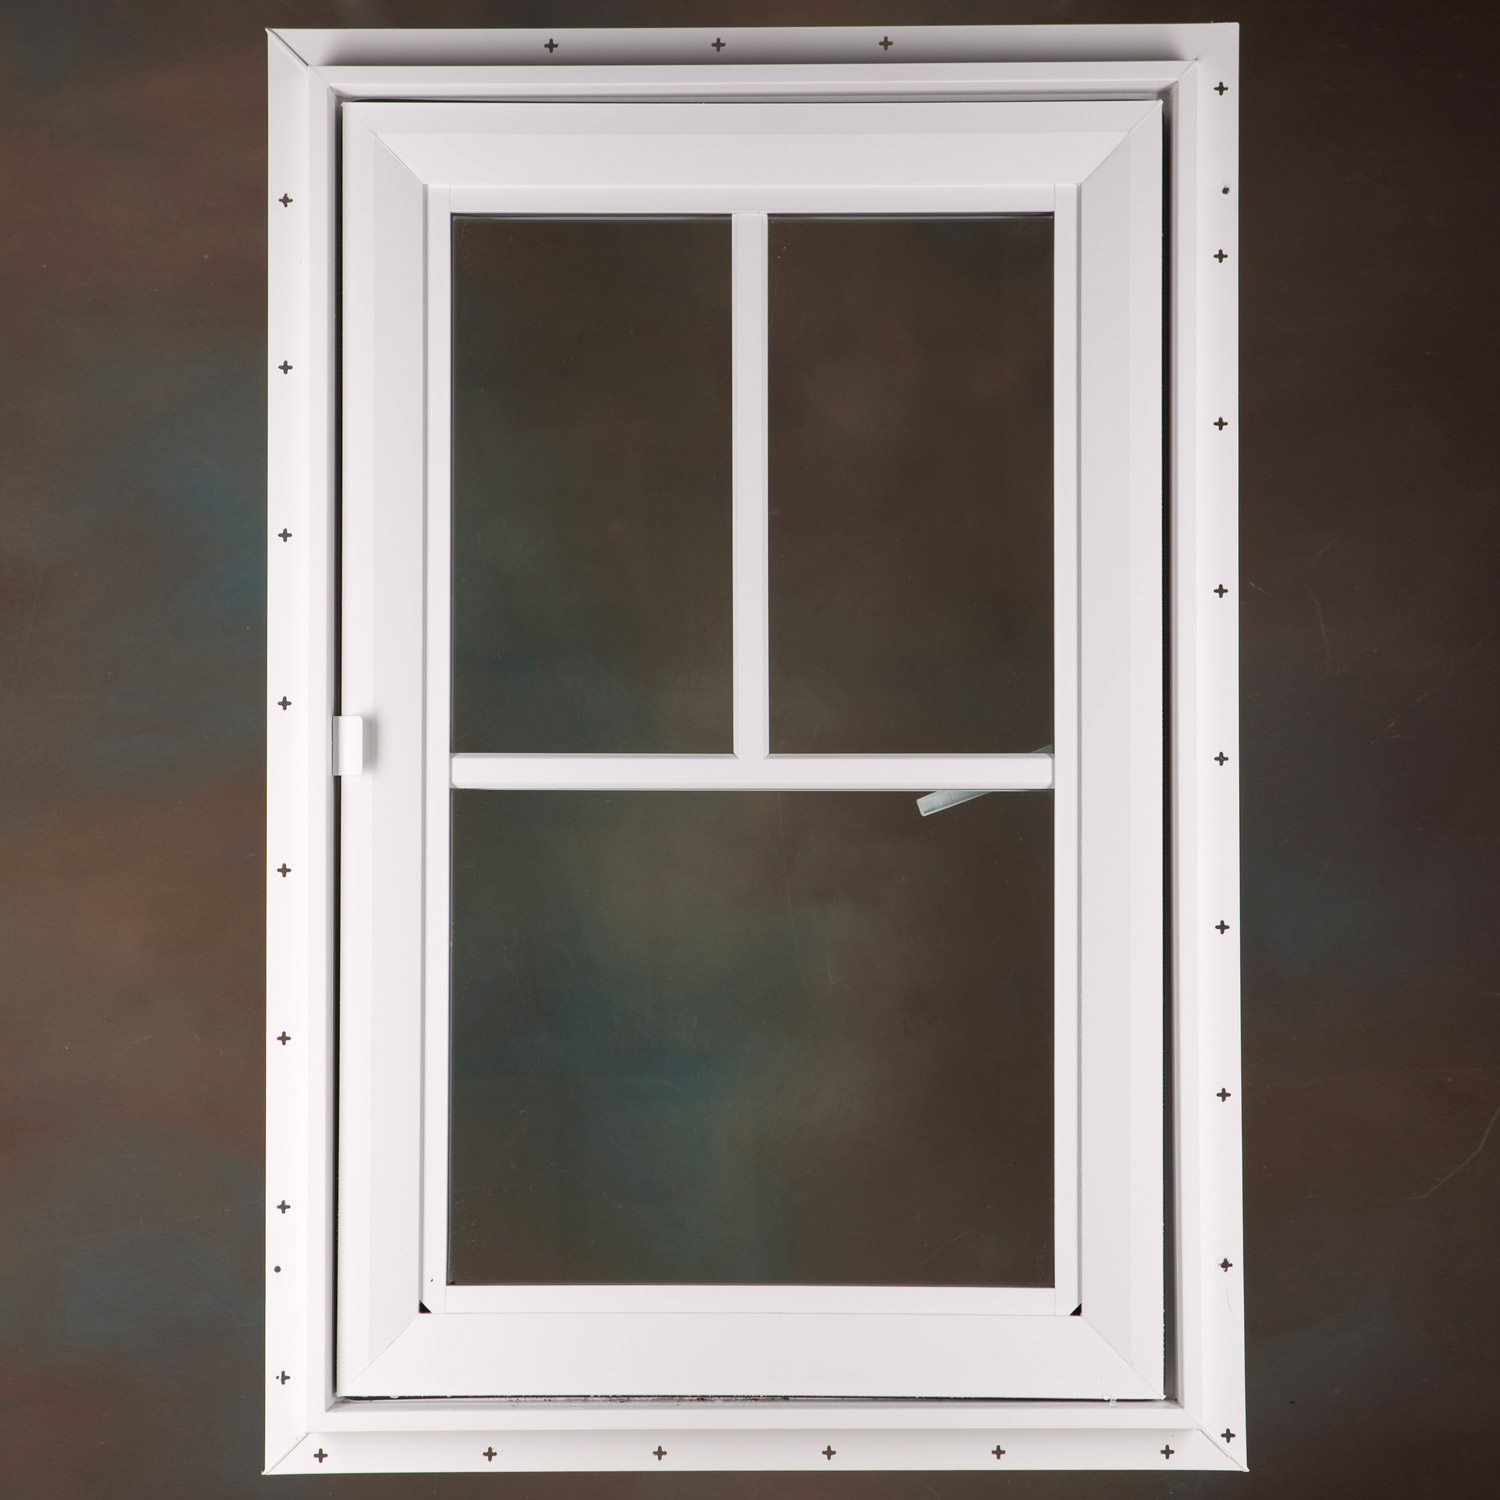 Vinyl window options modern windows building for Vinyl casement windows